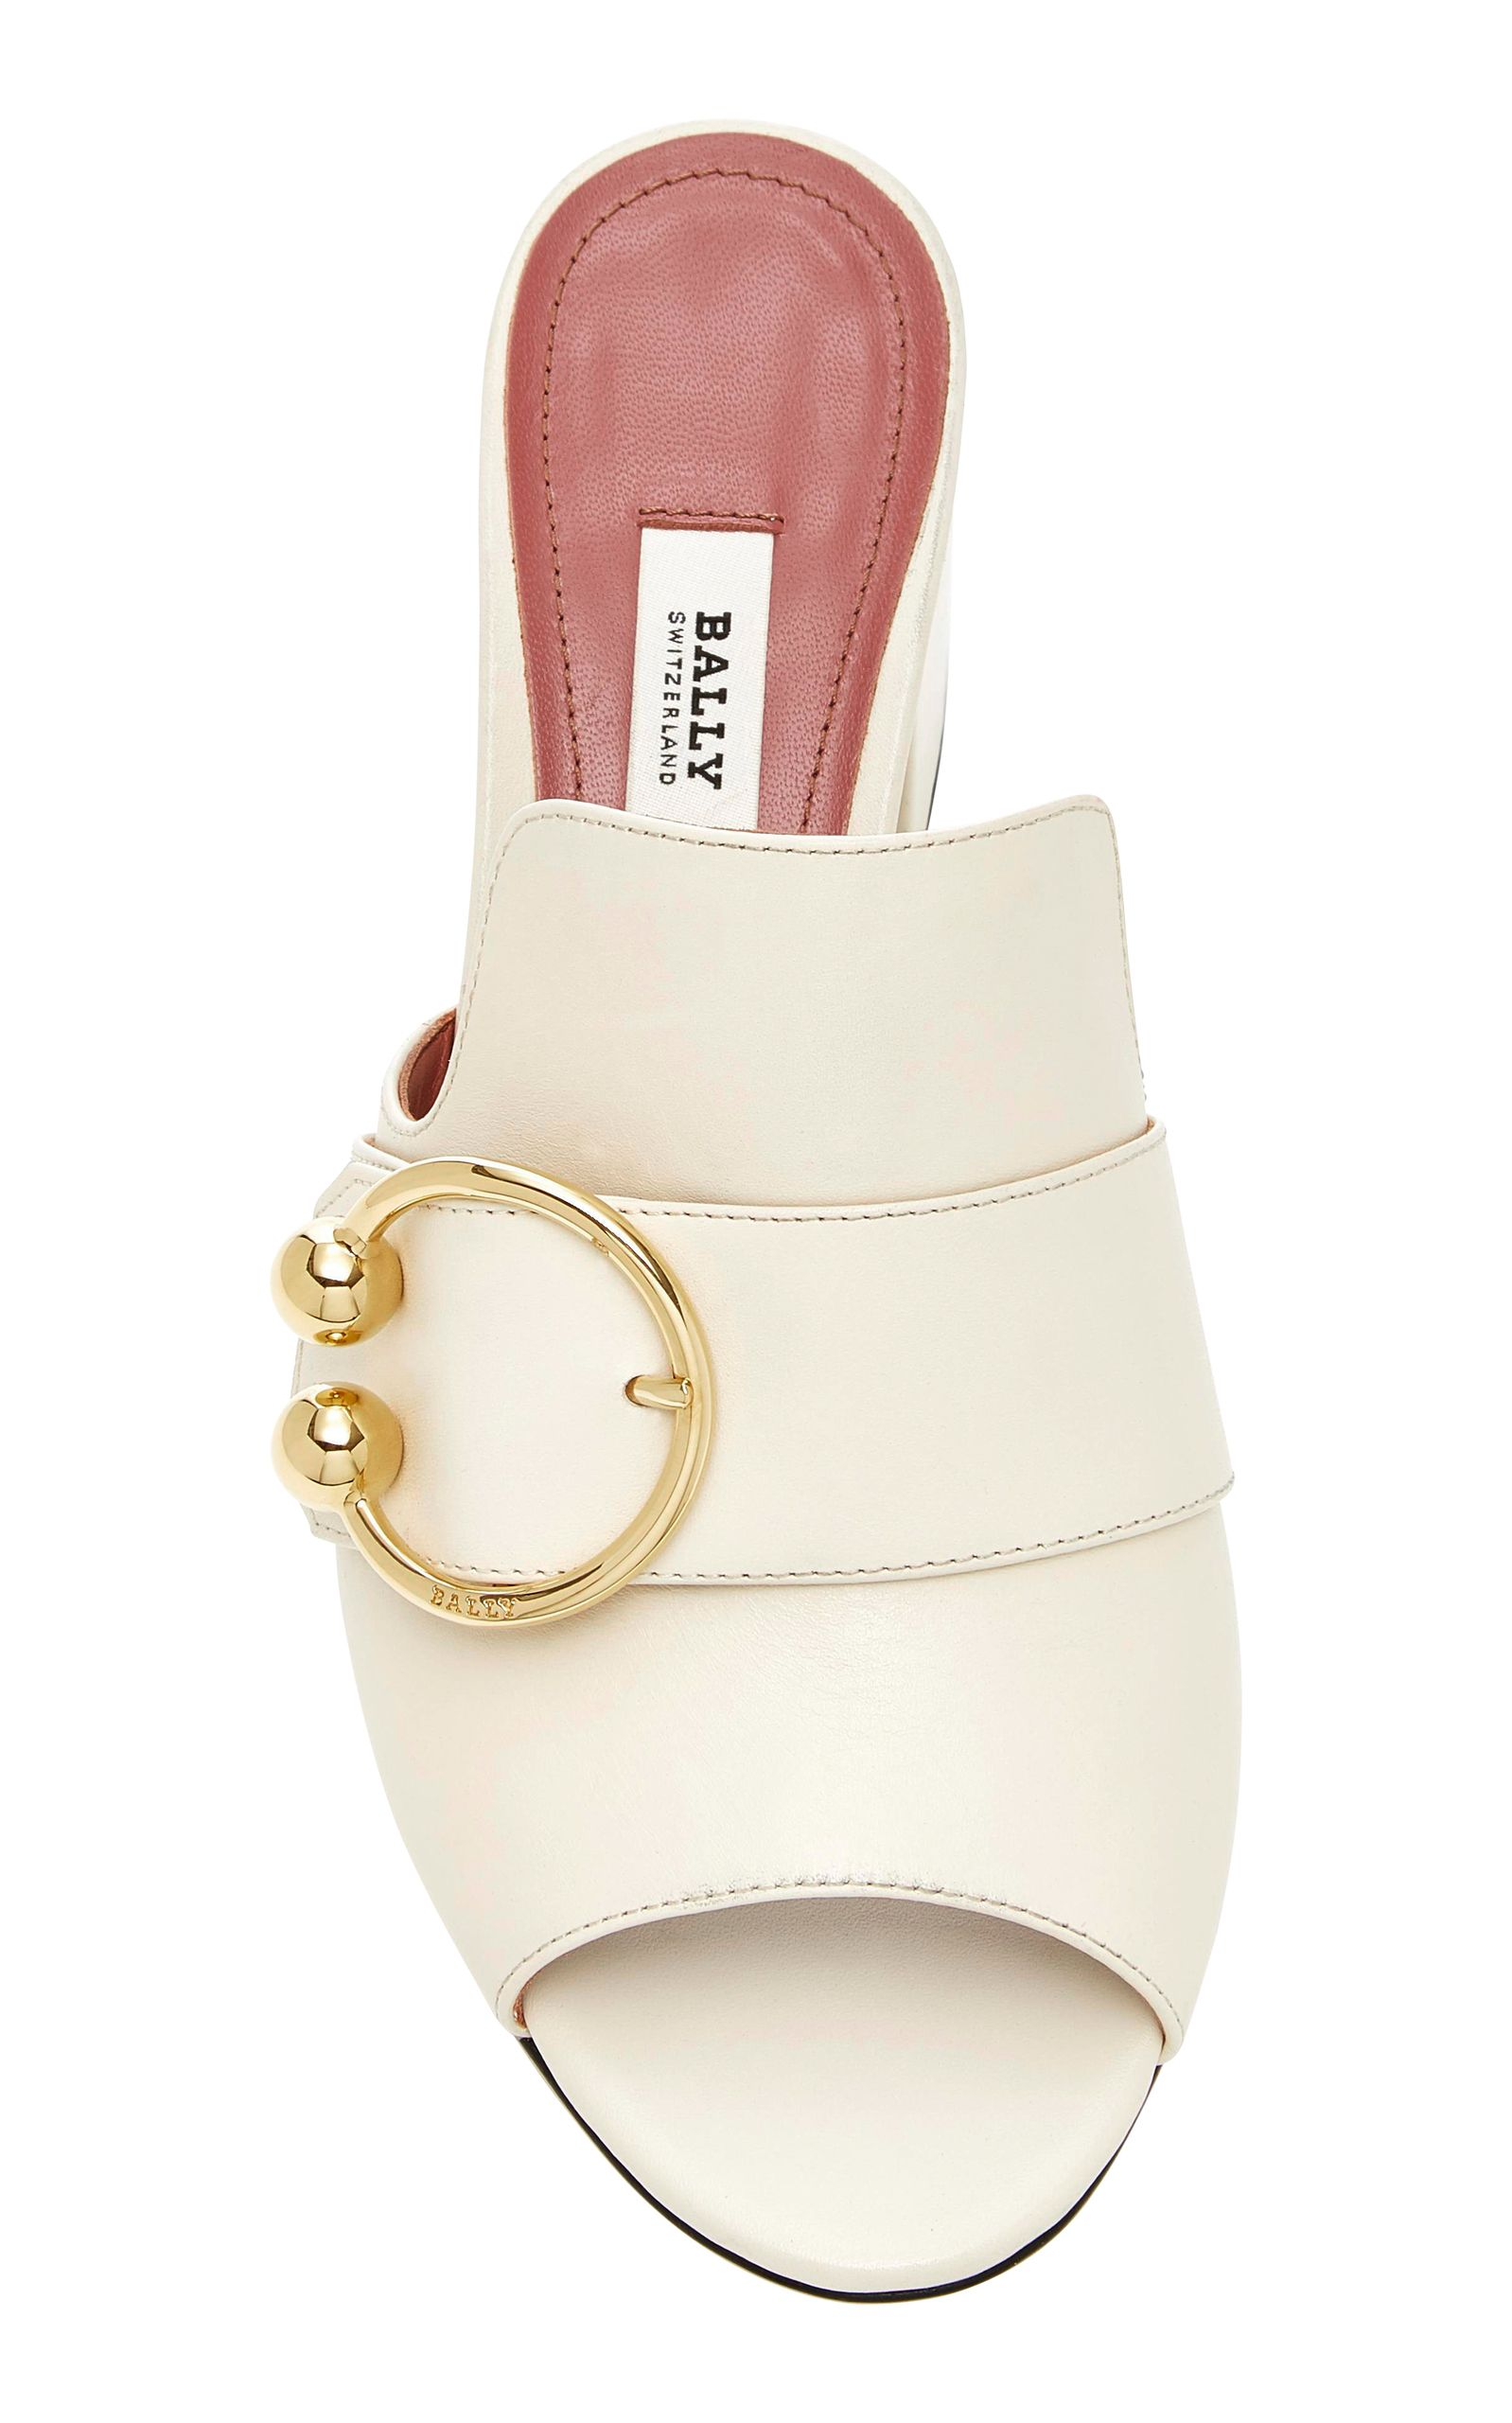 Joria Leather Sandals By Bally